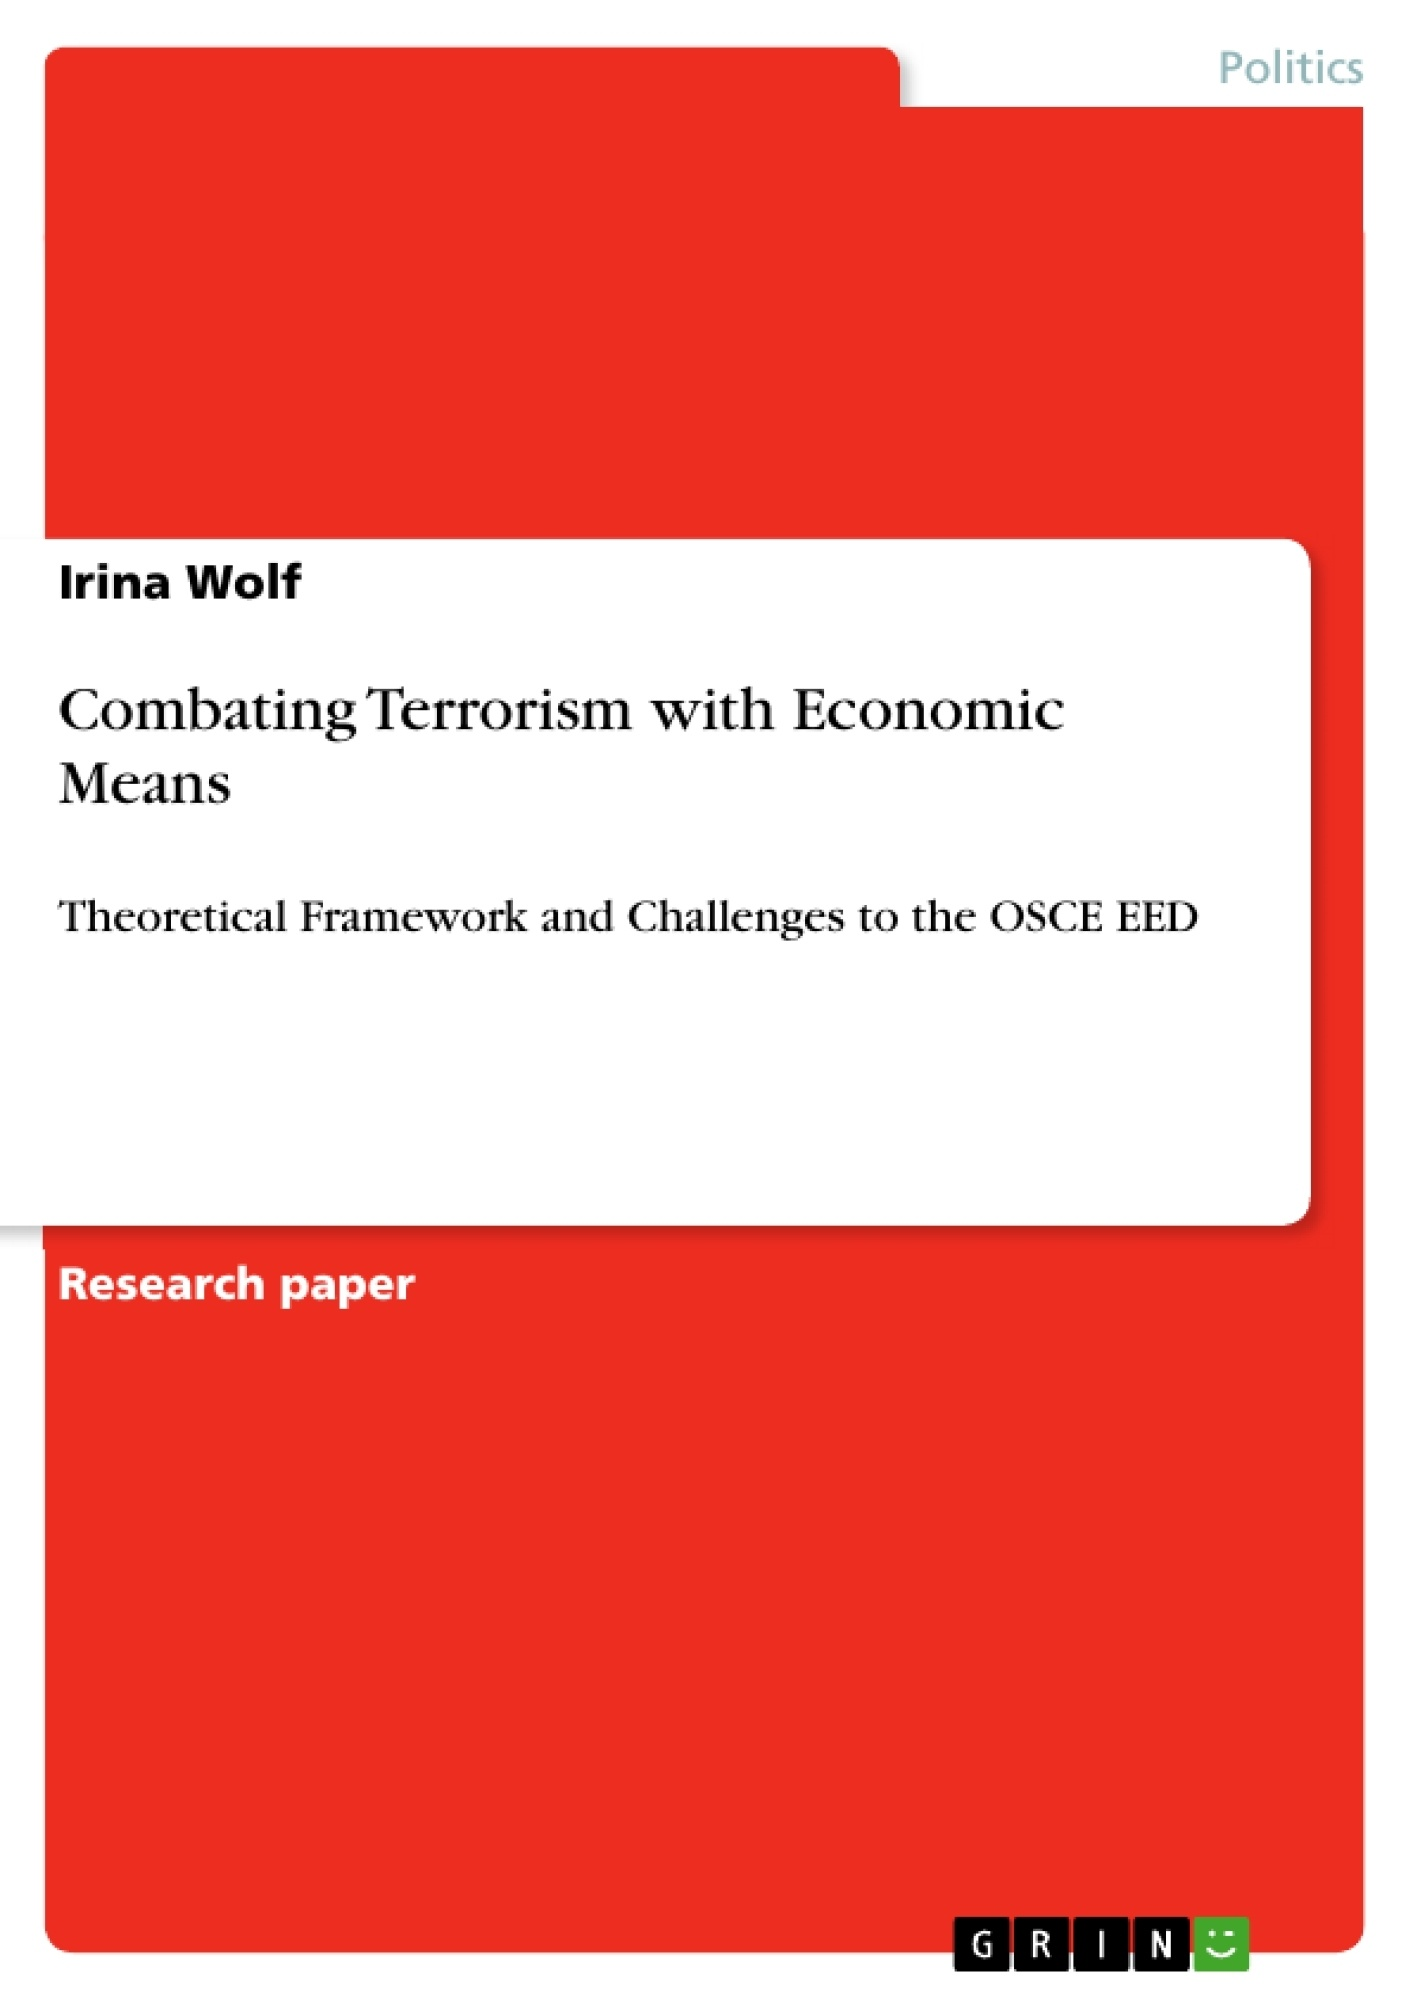 Title: Combating Terrorism with Economic Means